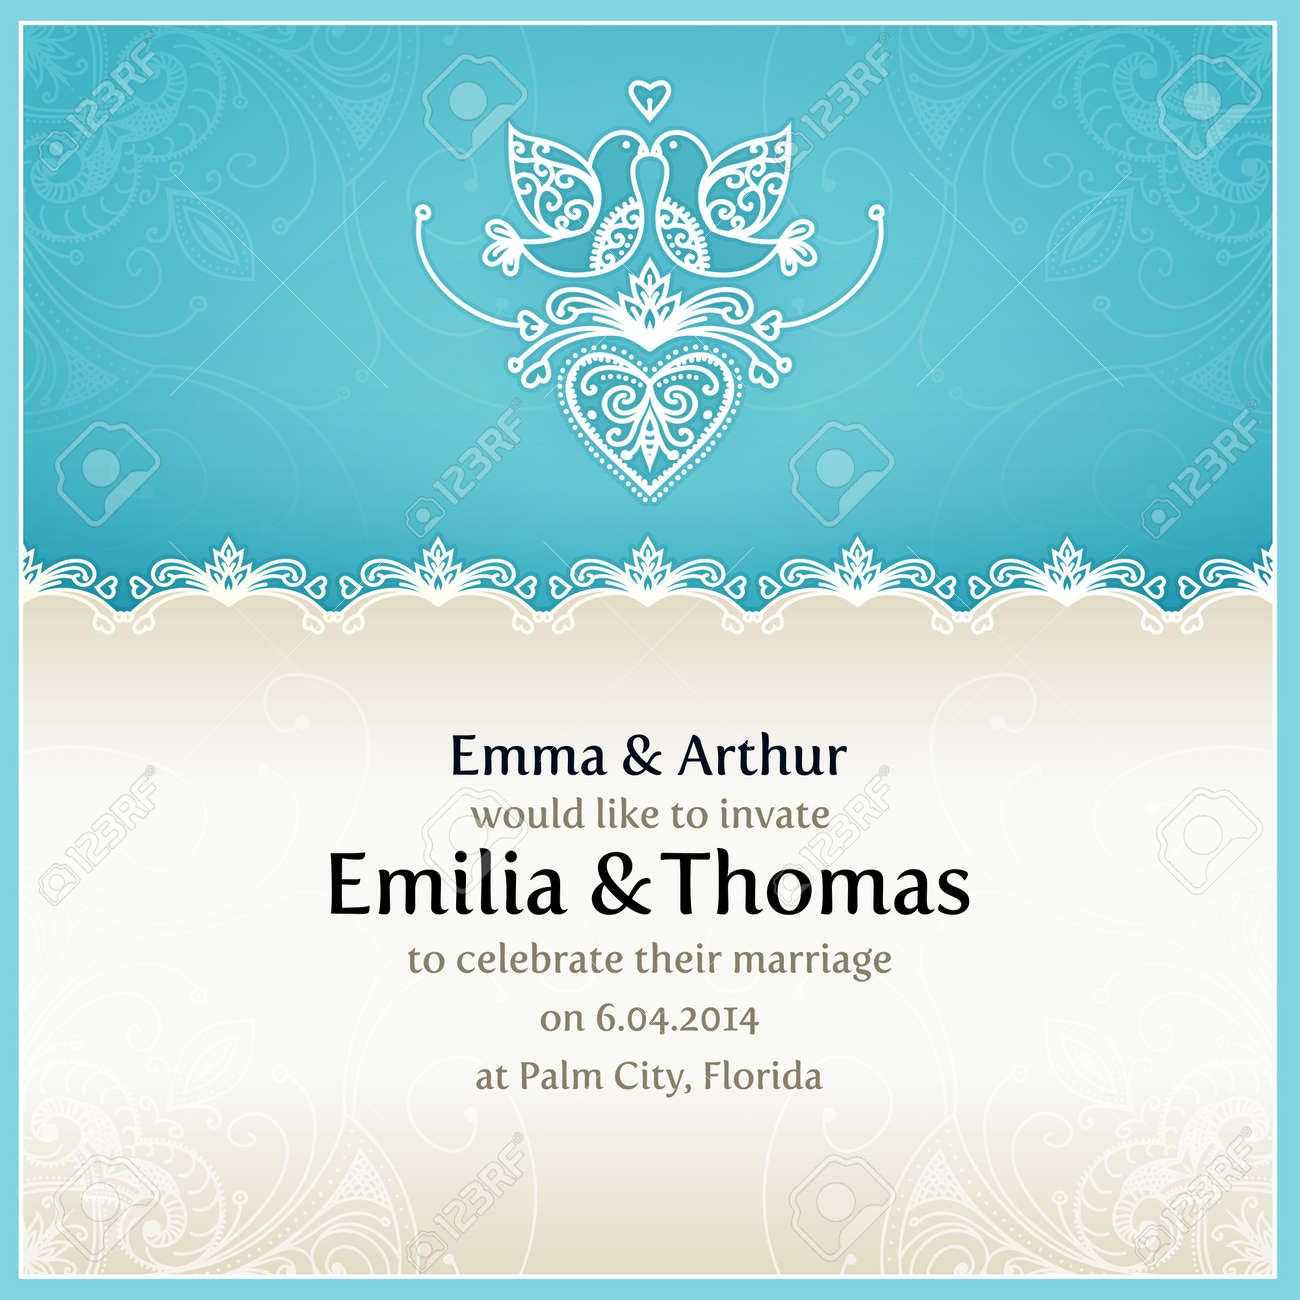 Blue wedding invitation design template with doves hearts flowers blue wedding invitation design template with doves hearts flowers and geometrical lace ornament stopboris Image collections